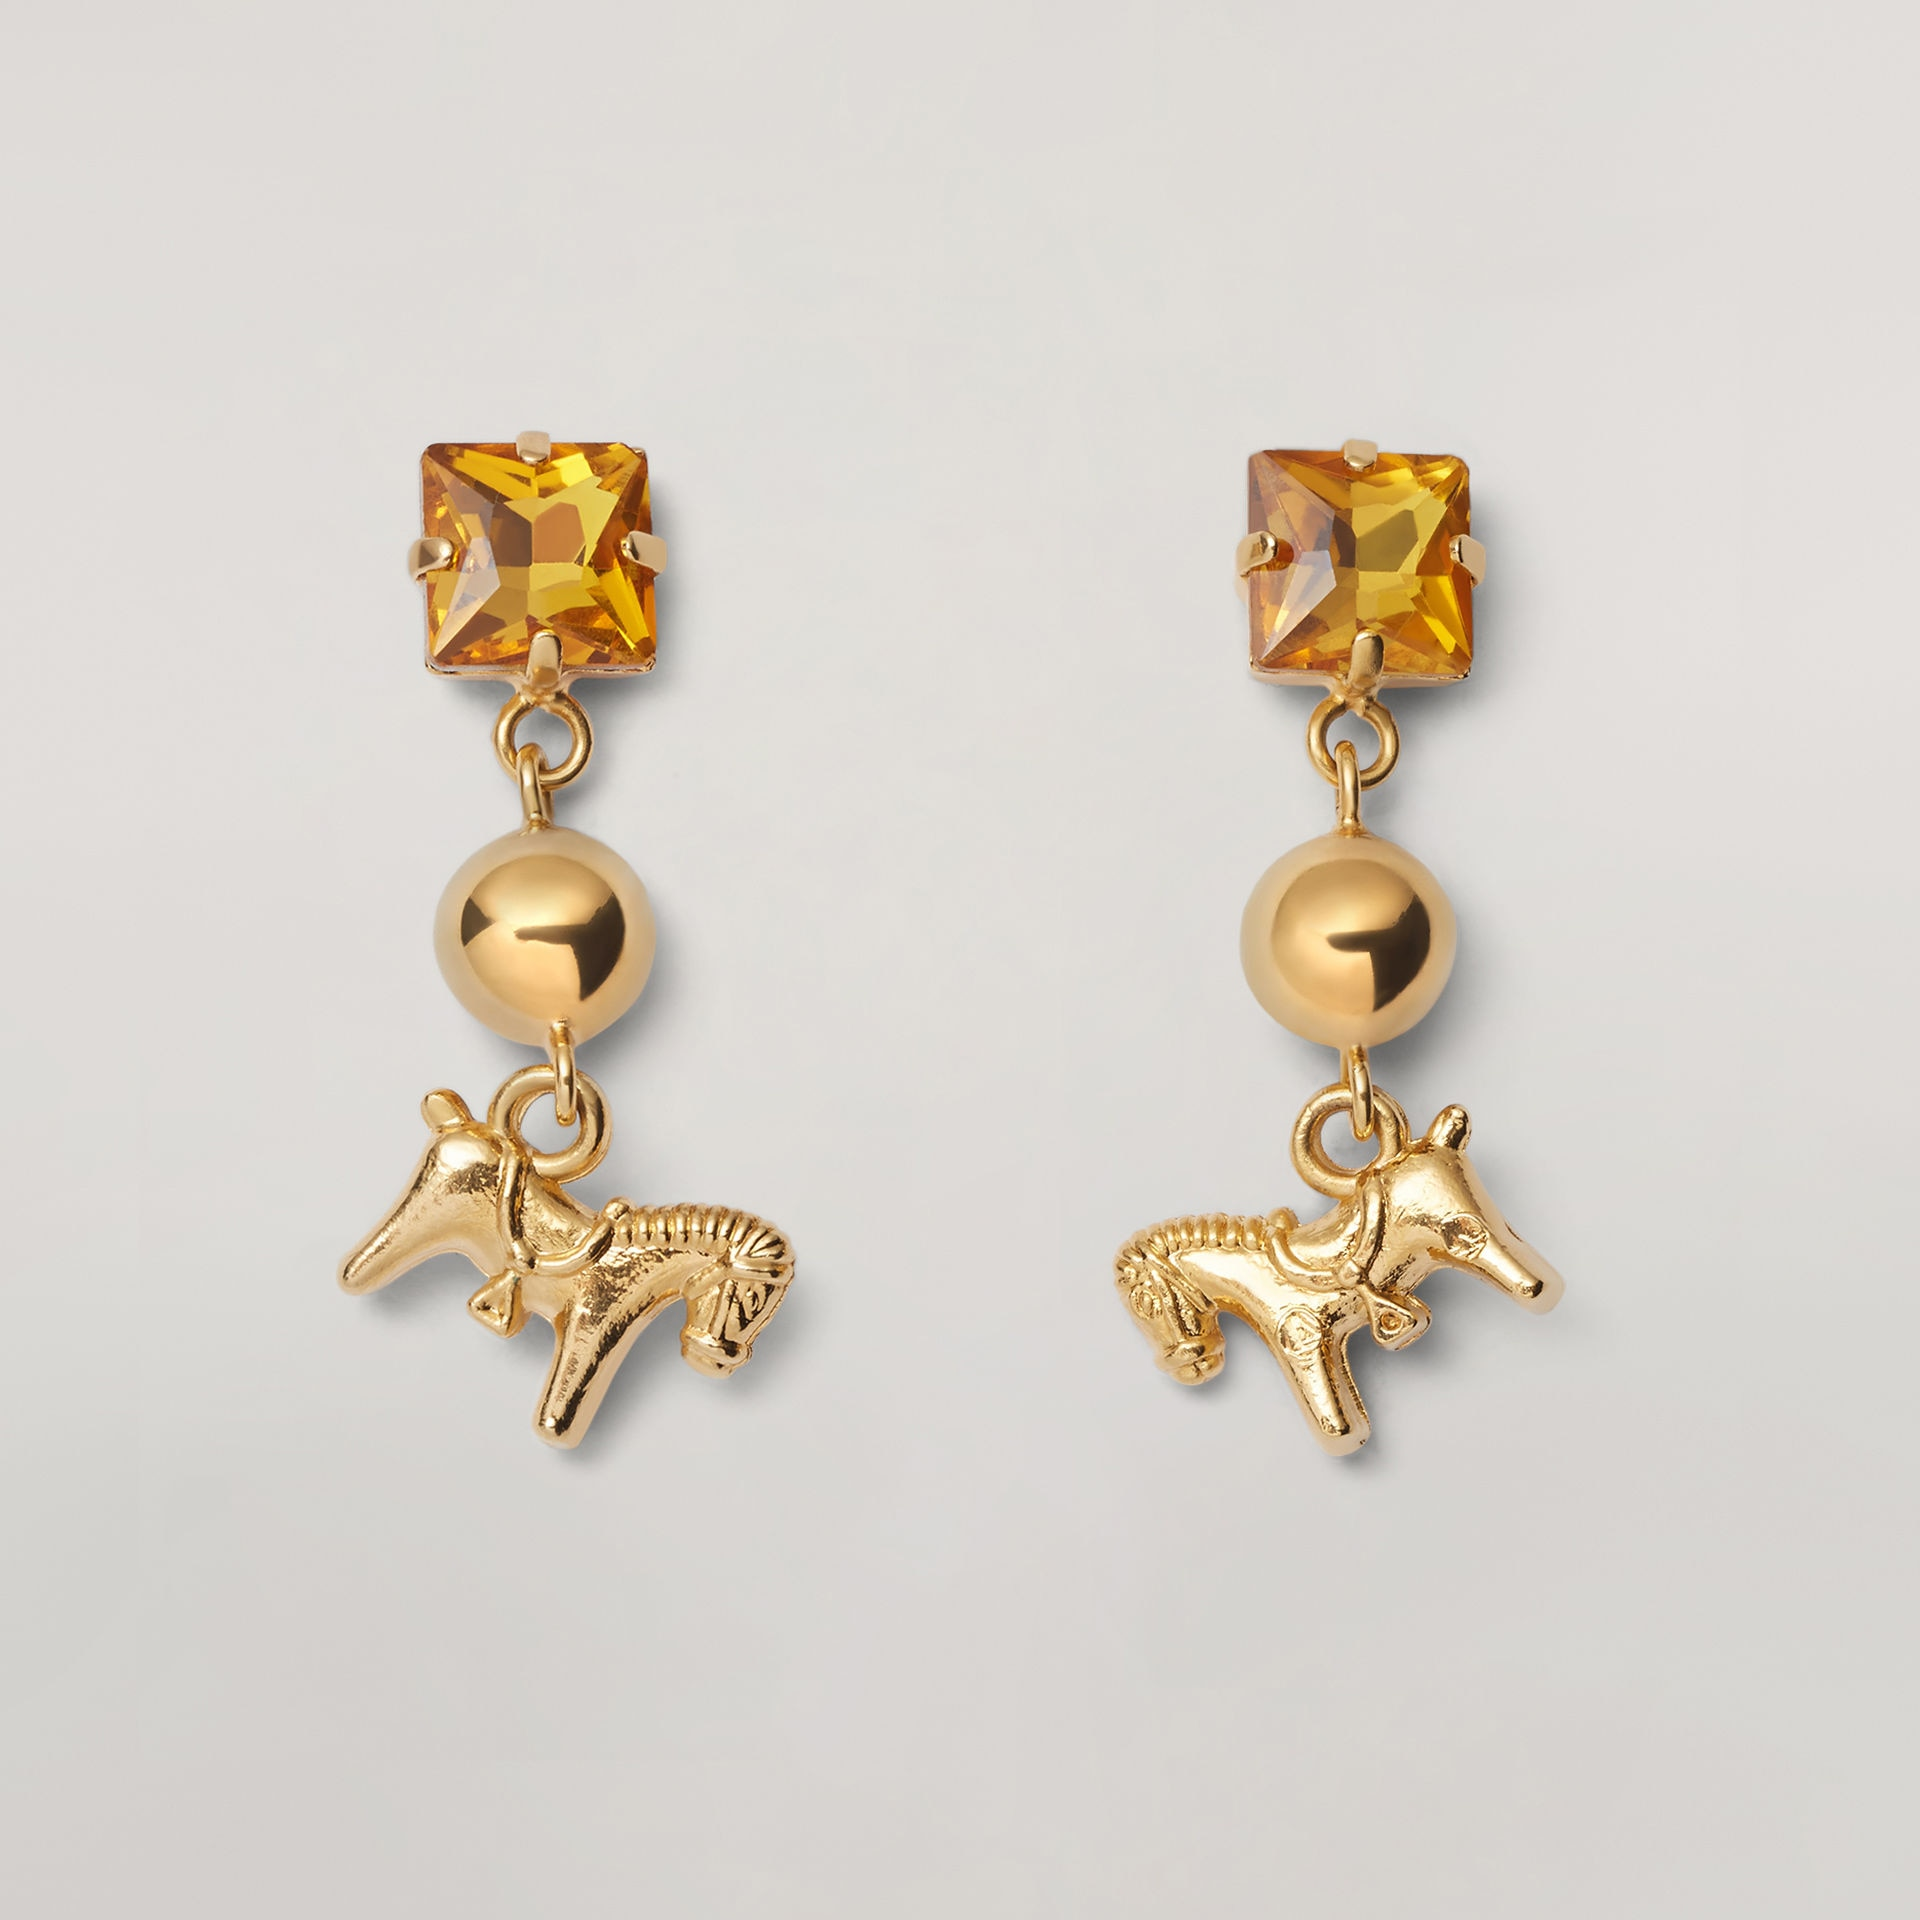 GIGA JACKS EARRINGS IN METAL AND GLASS WITH PONY-SHAPED PENDANT